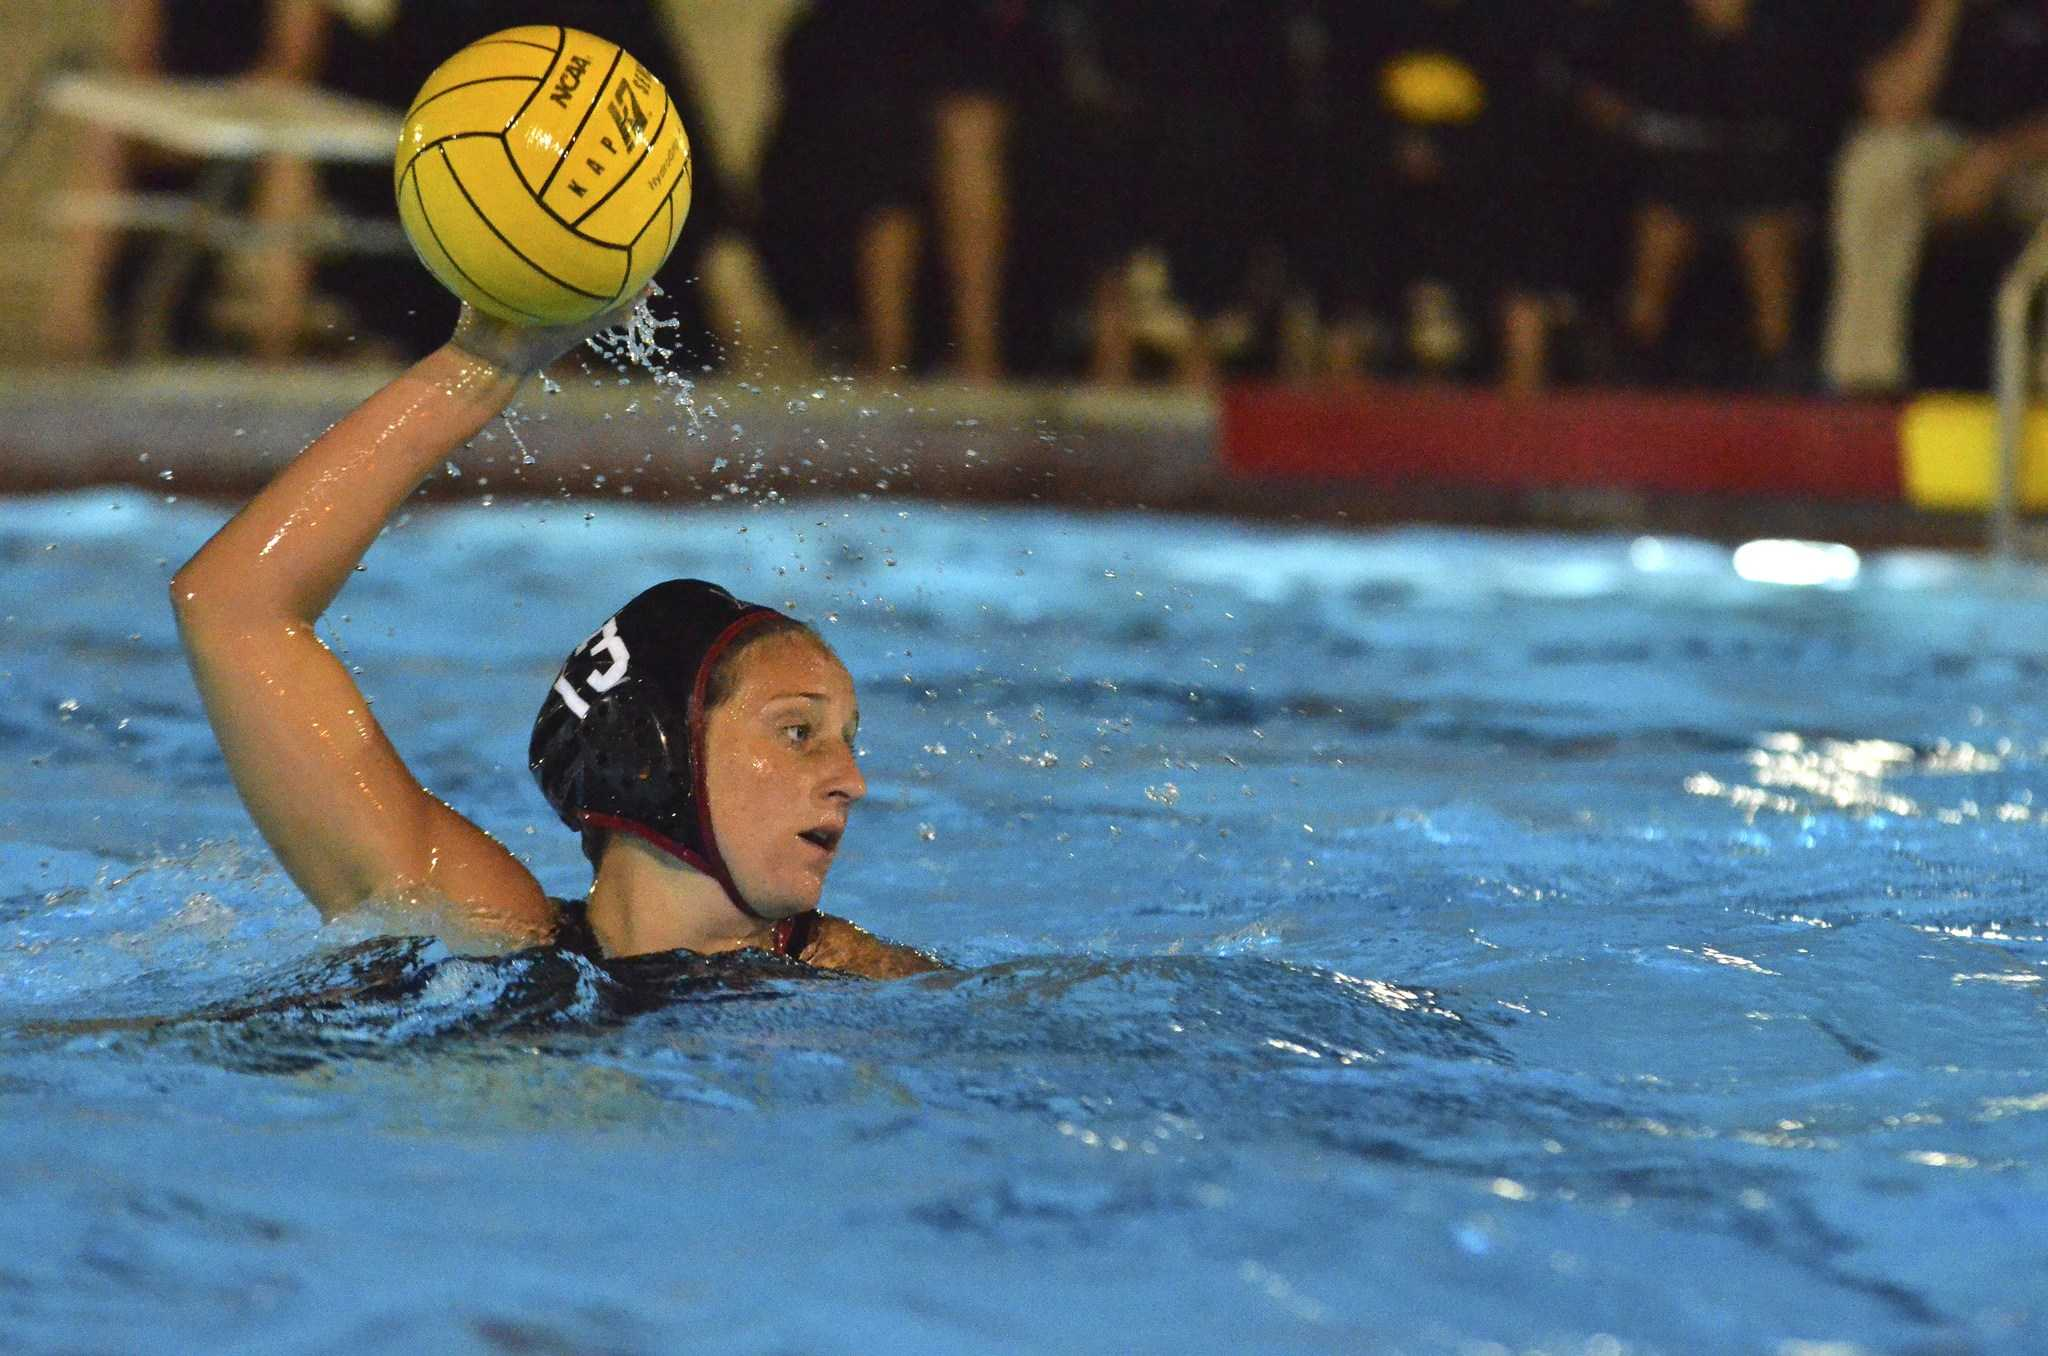 Woman throwing water polo ball